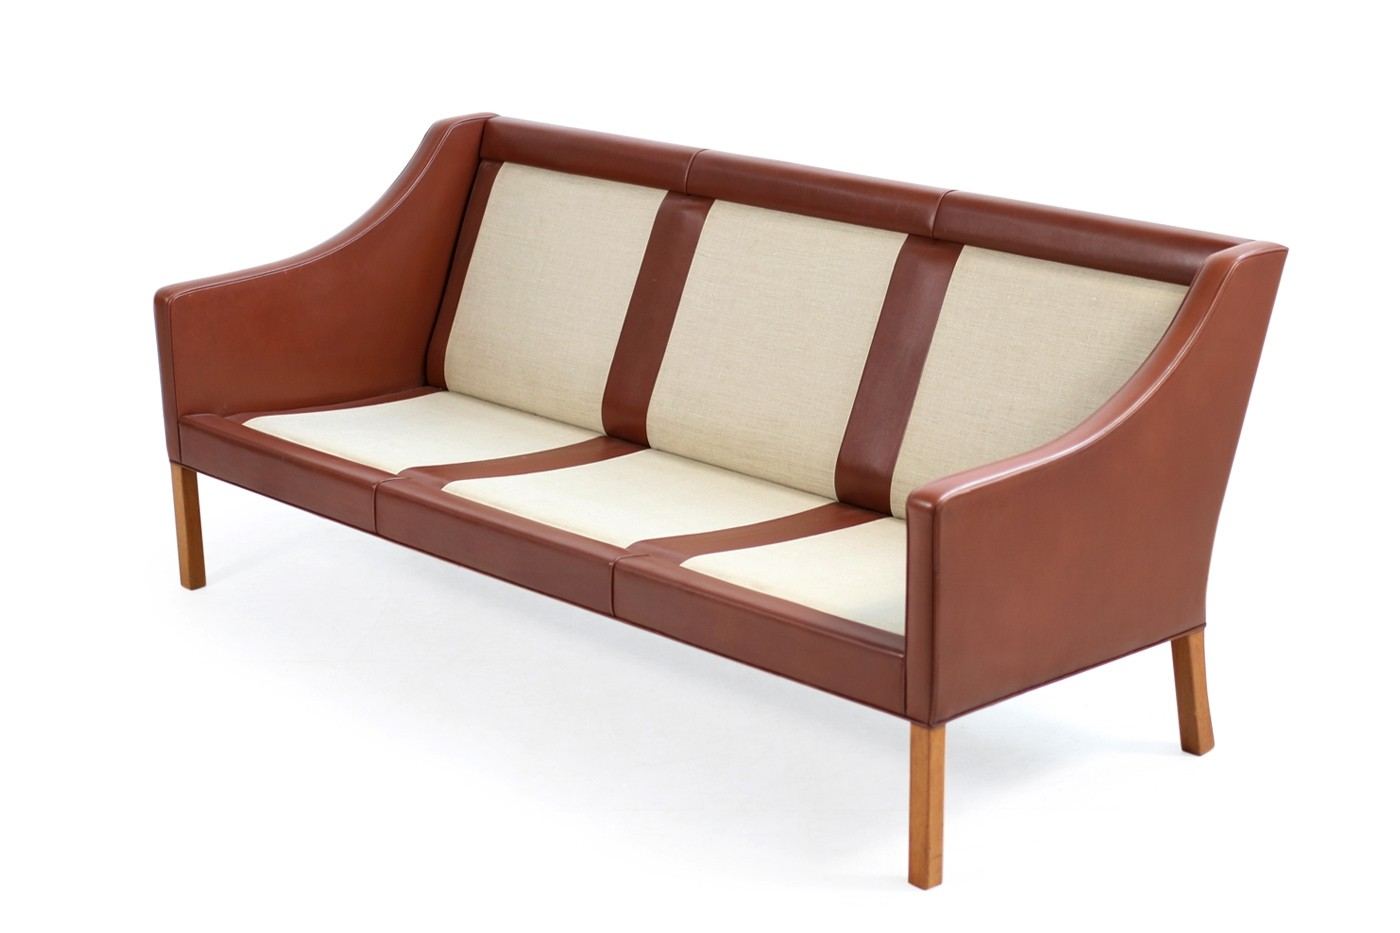 mogensen sofa 2209 sleeper sofas that come apart 1960s borge leather mod by fredericia